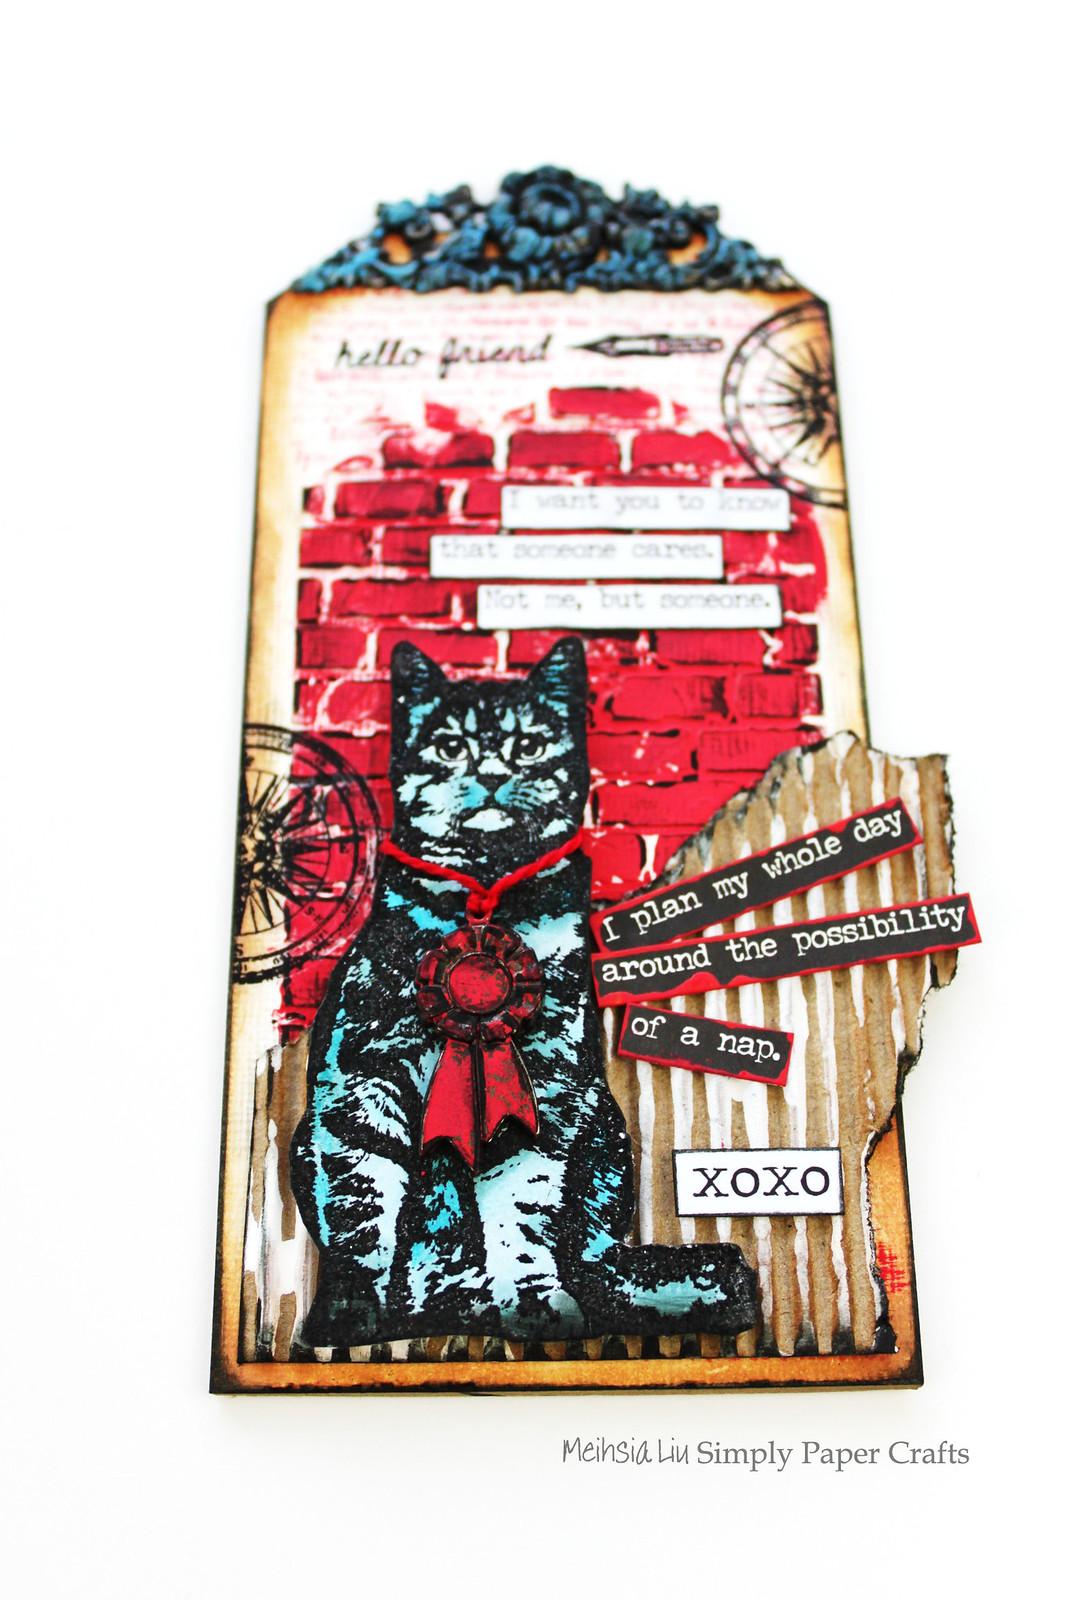 Meihsia Liu Simply Paper Crafts Mixed Media Tag Red White Blue Cat Simon Says Stamp Tim Holtz DarkRoom Door